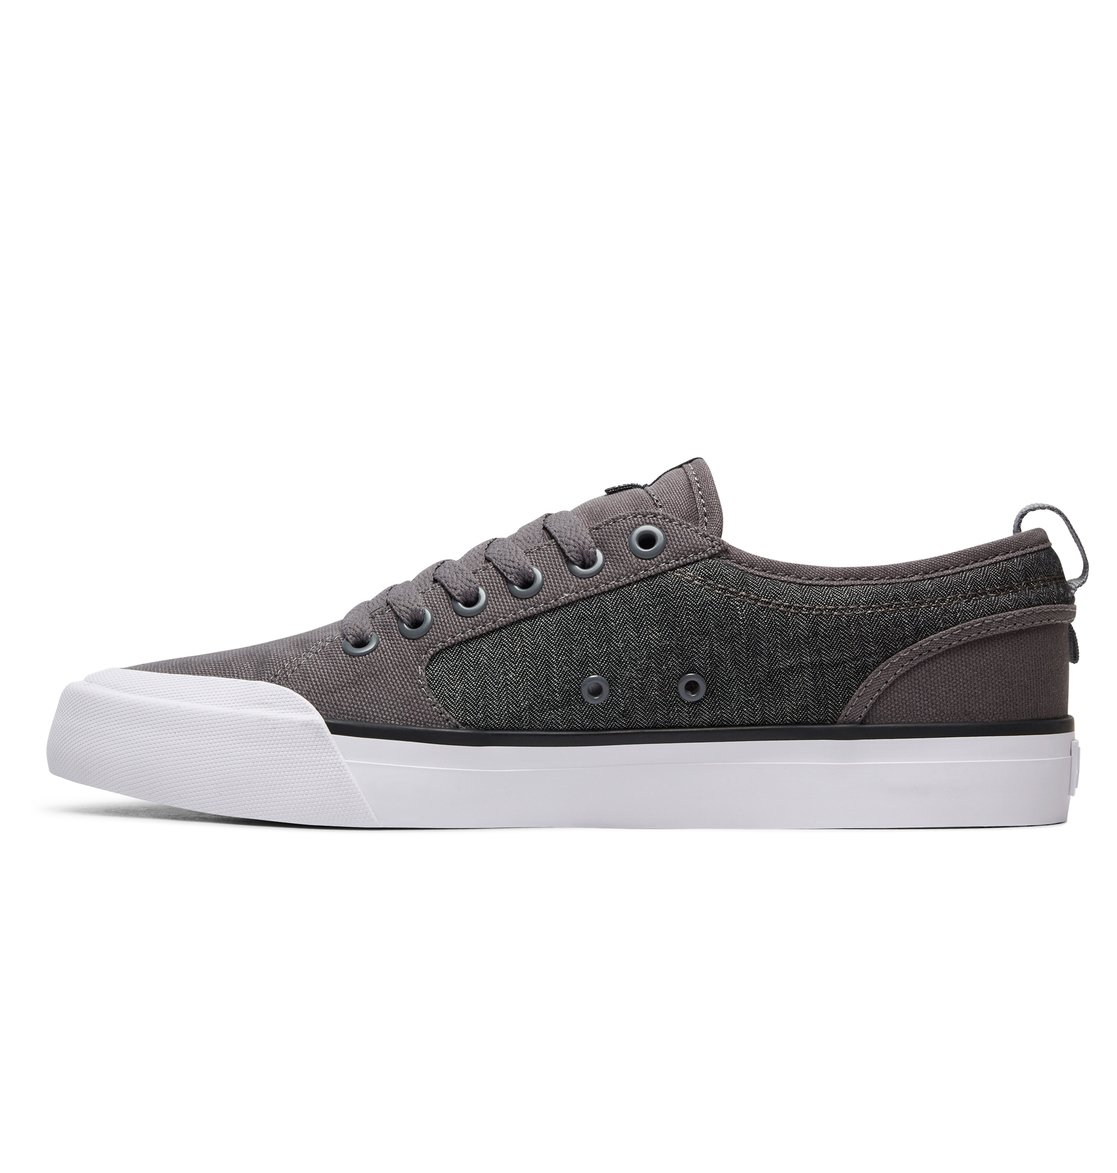 DC Shoes Evan Smith TX - Shoes - Zapatillas - Hombre - EU 46 3IBAbkCd